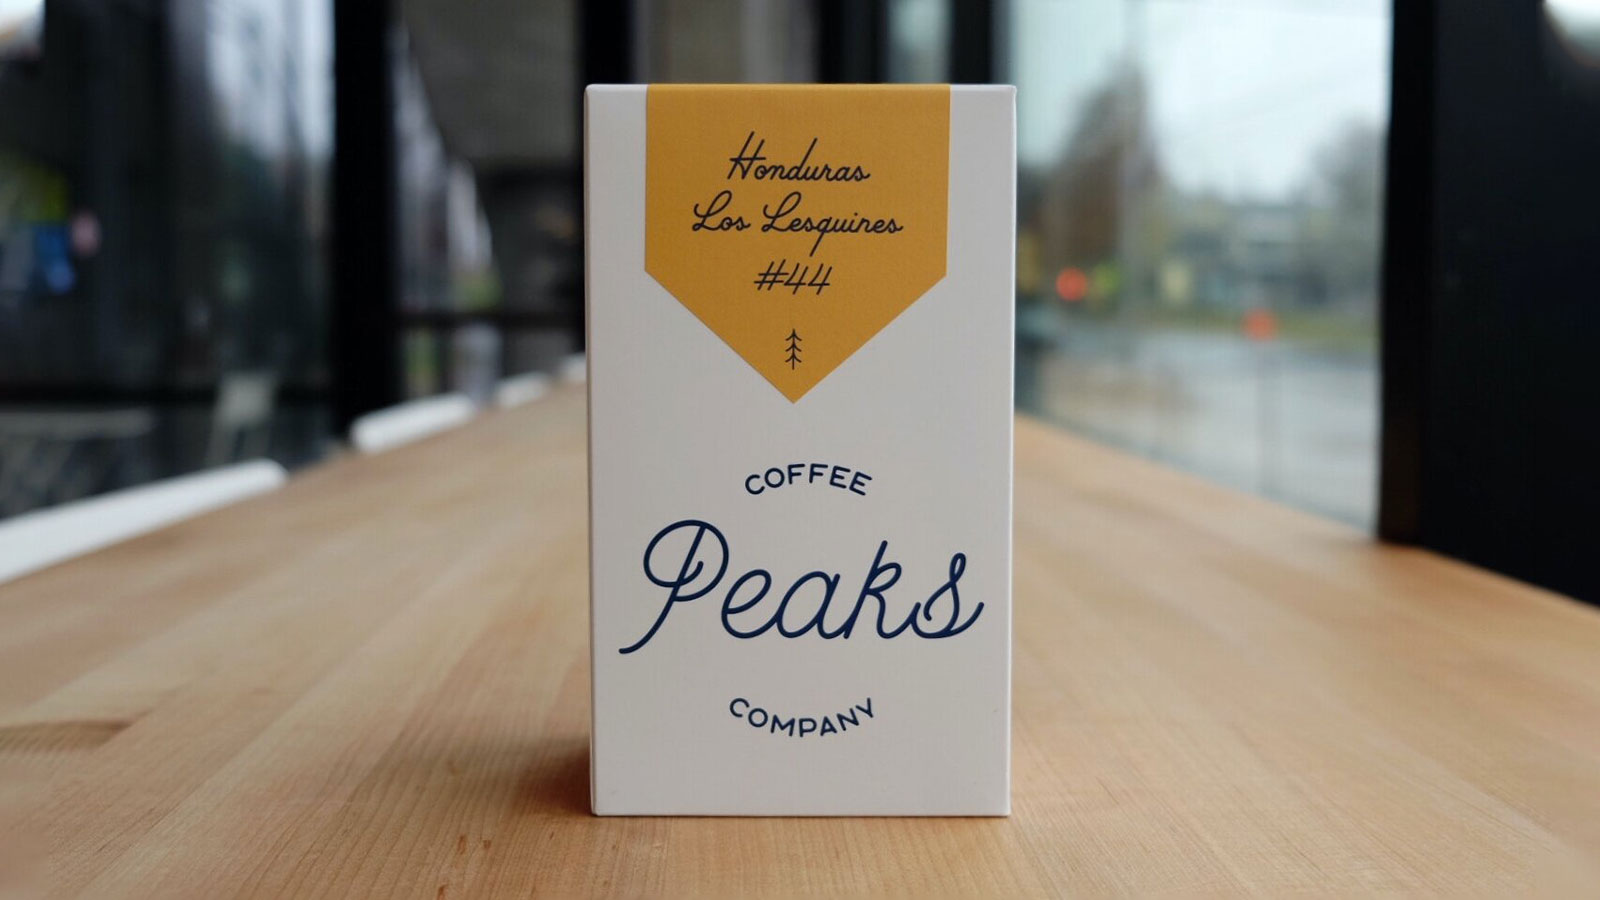 Peaks Coffee Co. Honduras Los Lesquines Coffee